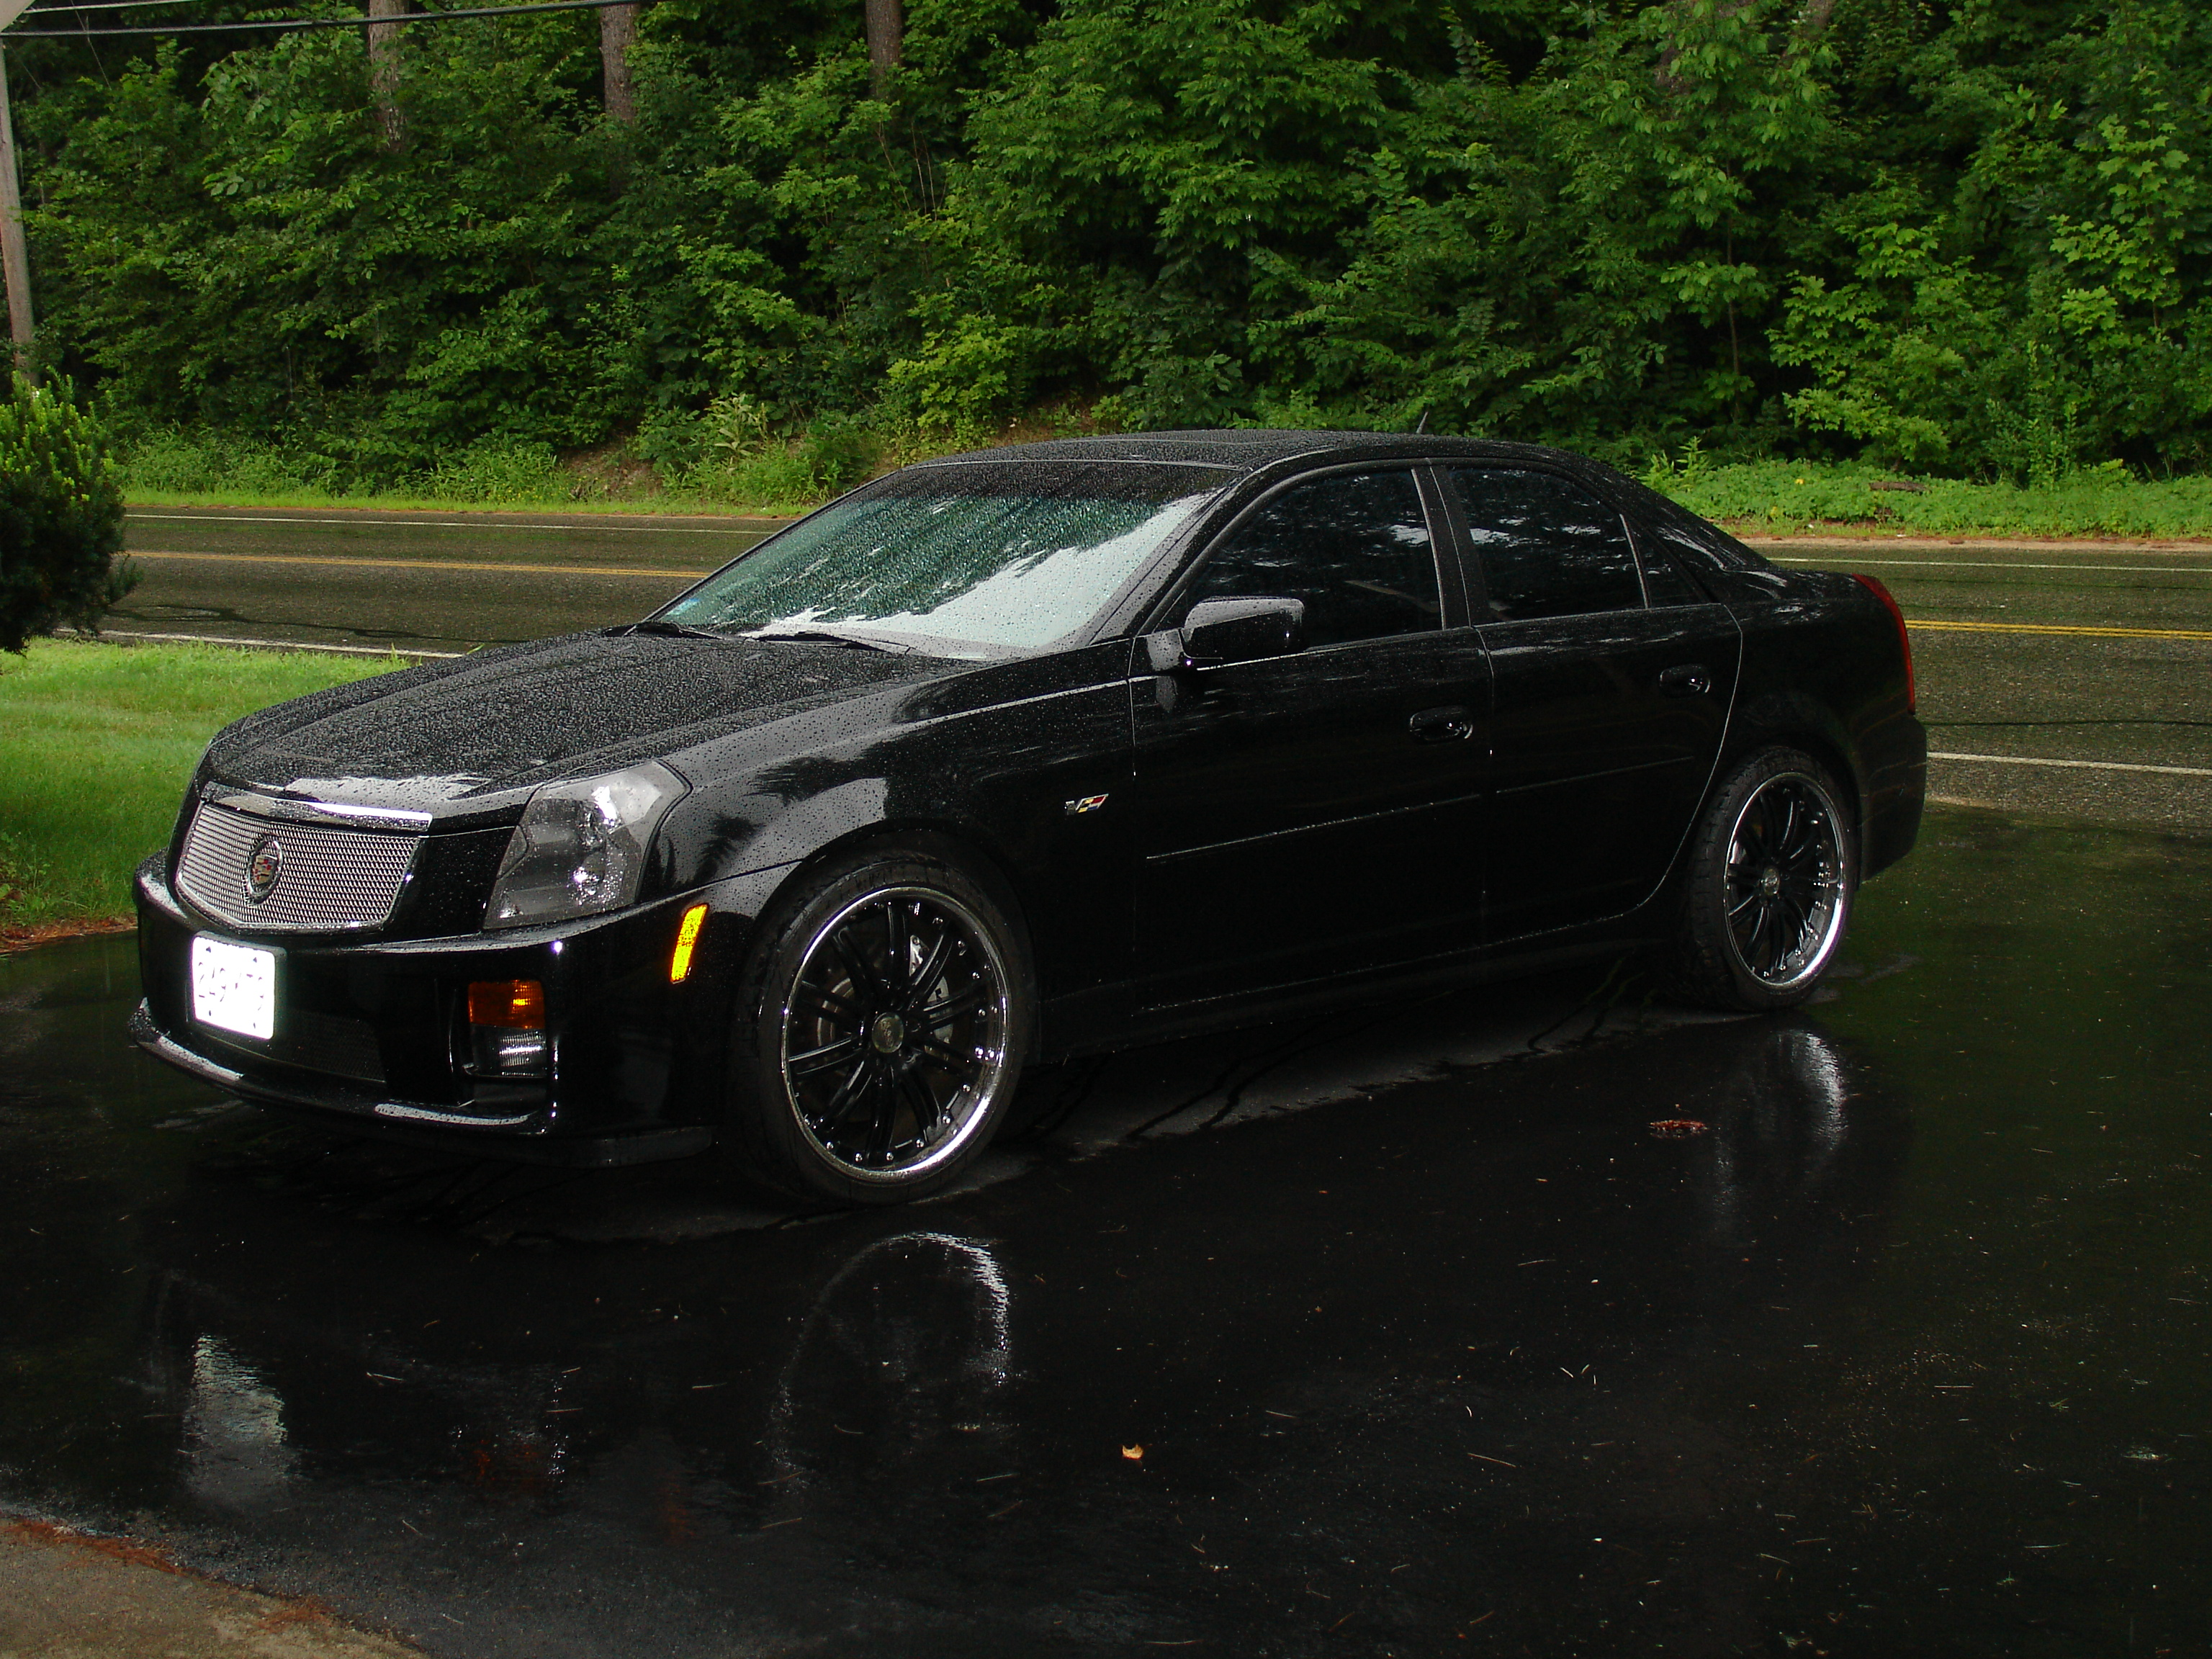 2006 Cadillac Cts Photos  Informations  Articles